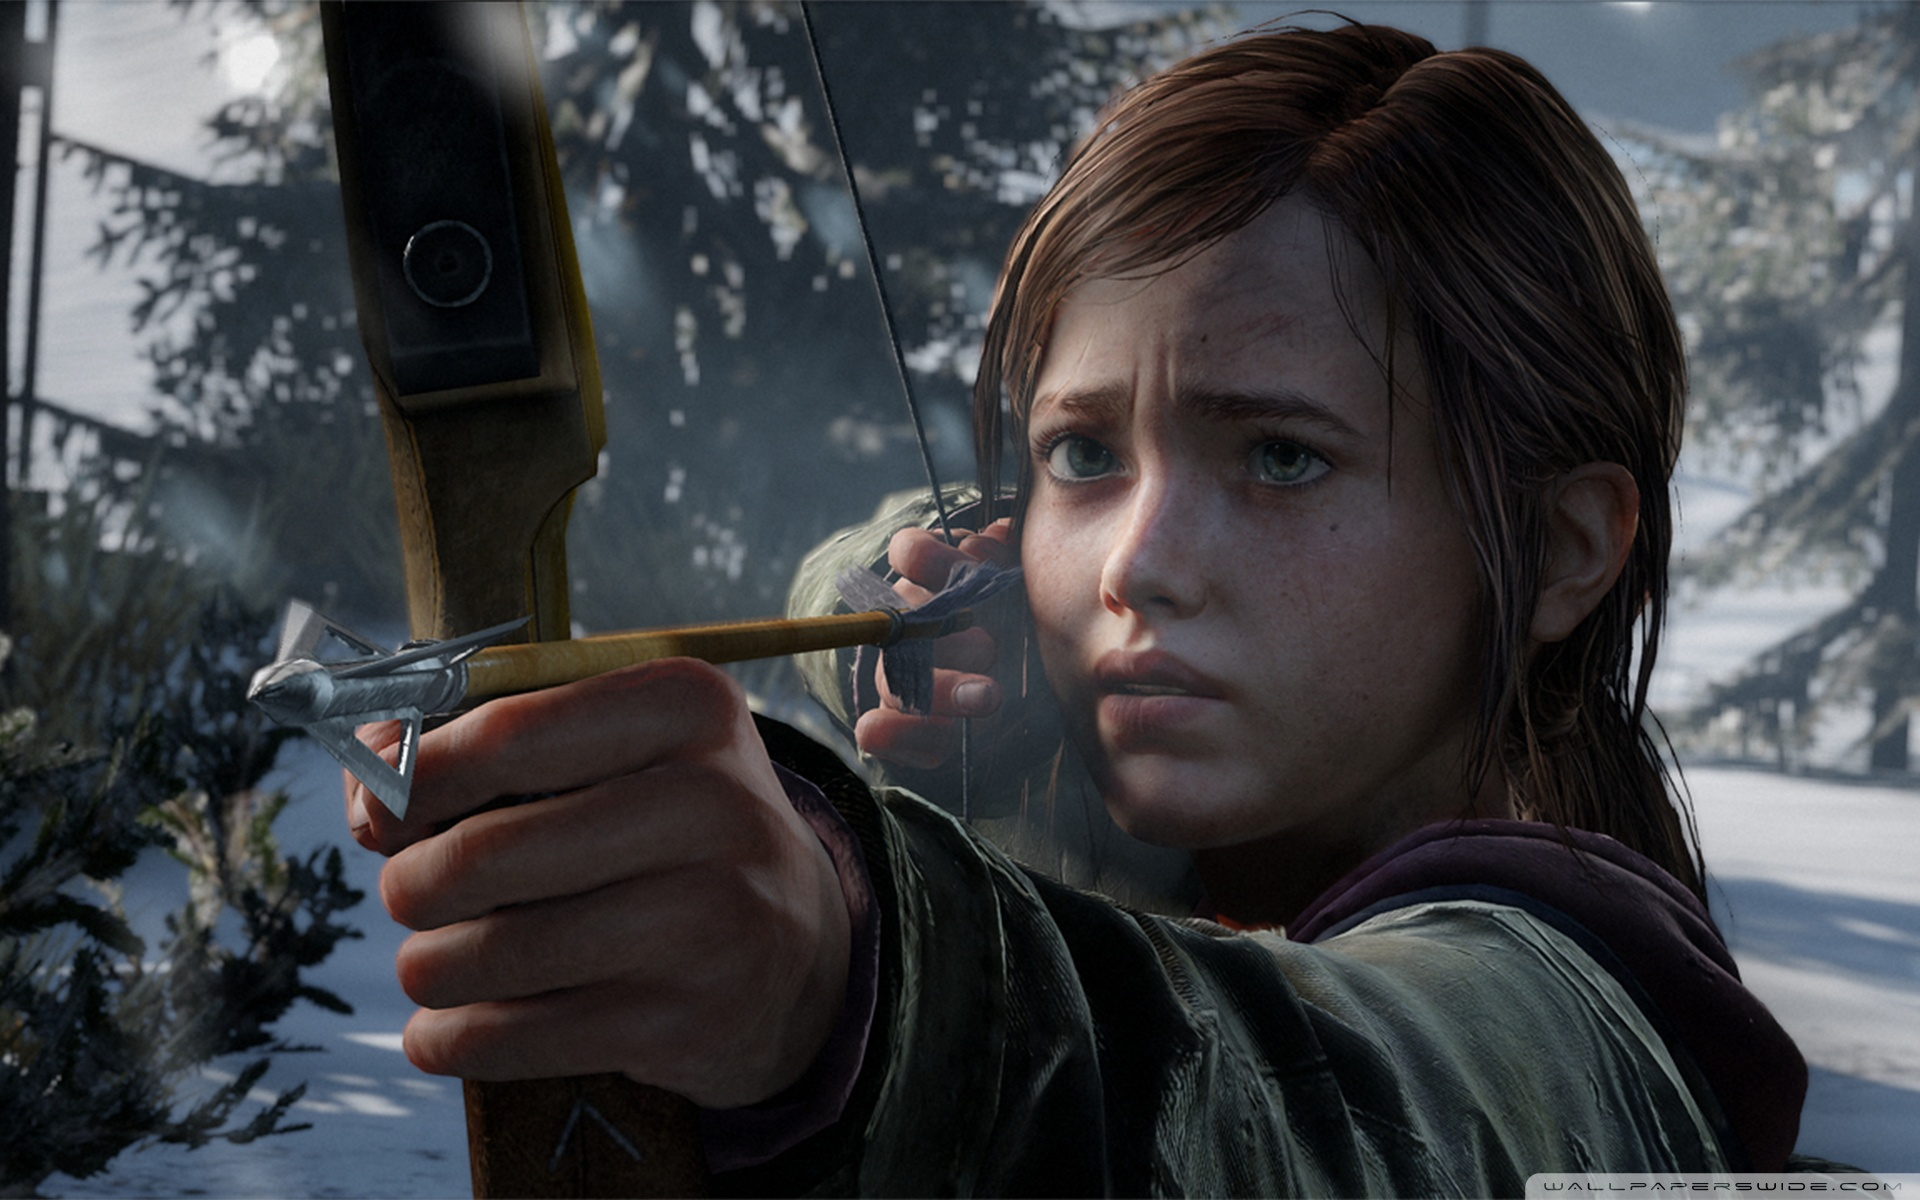 Wallpaper Of The Day - Last Of Us , HD Wallpaper & Backgrounds